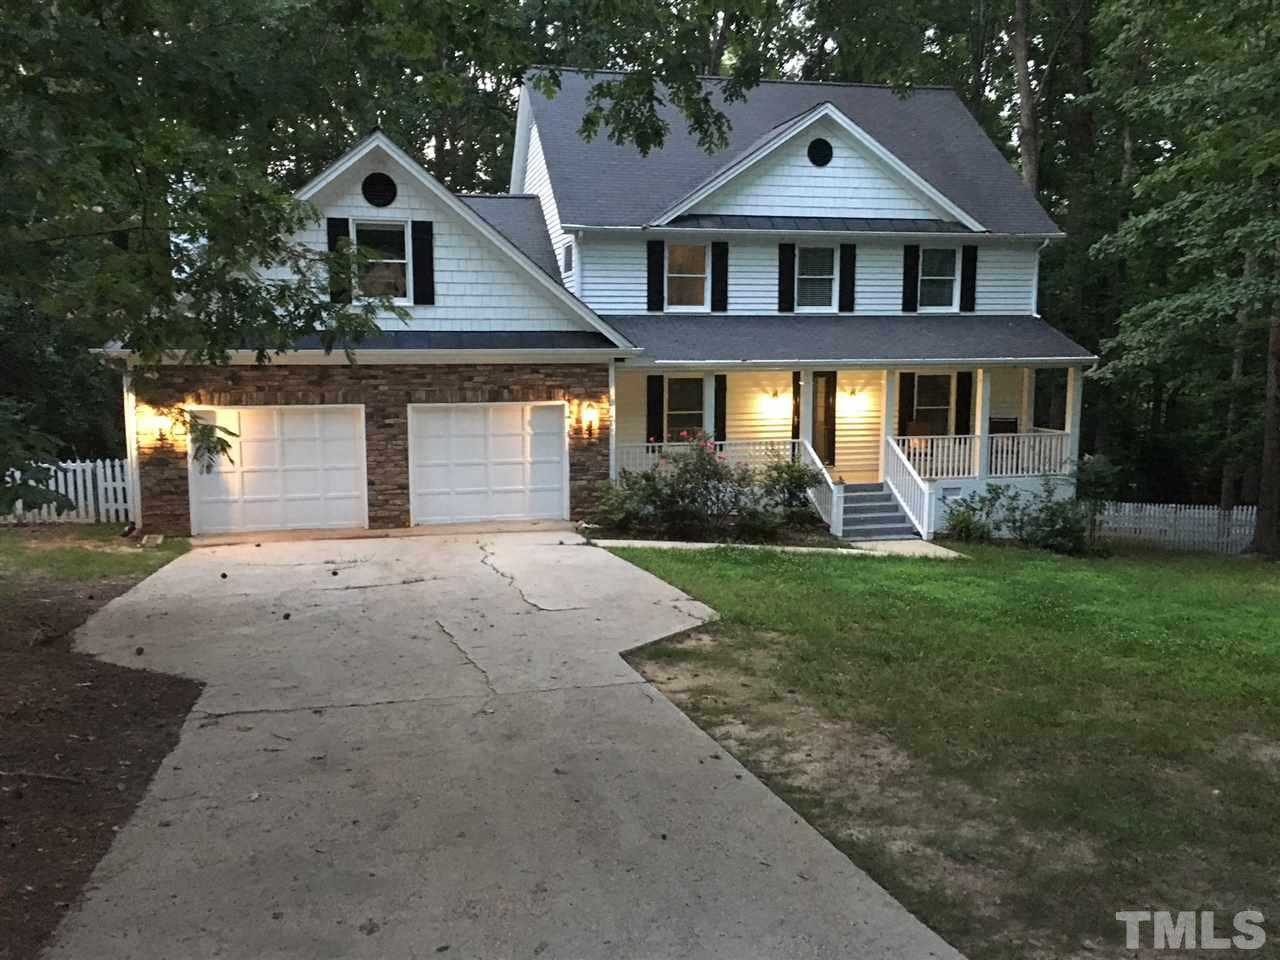 $2,495 - 4Br/3Ba -  for Sale in Summerwinds, Cary